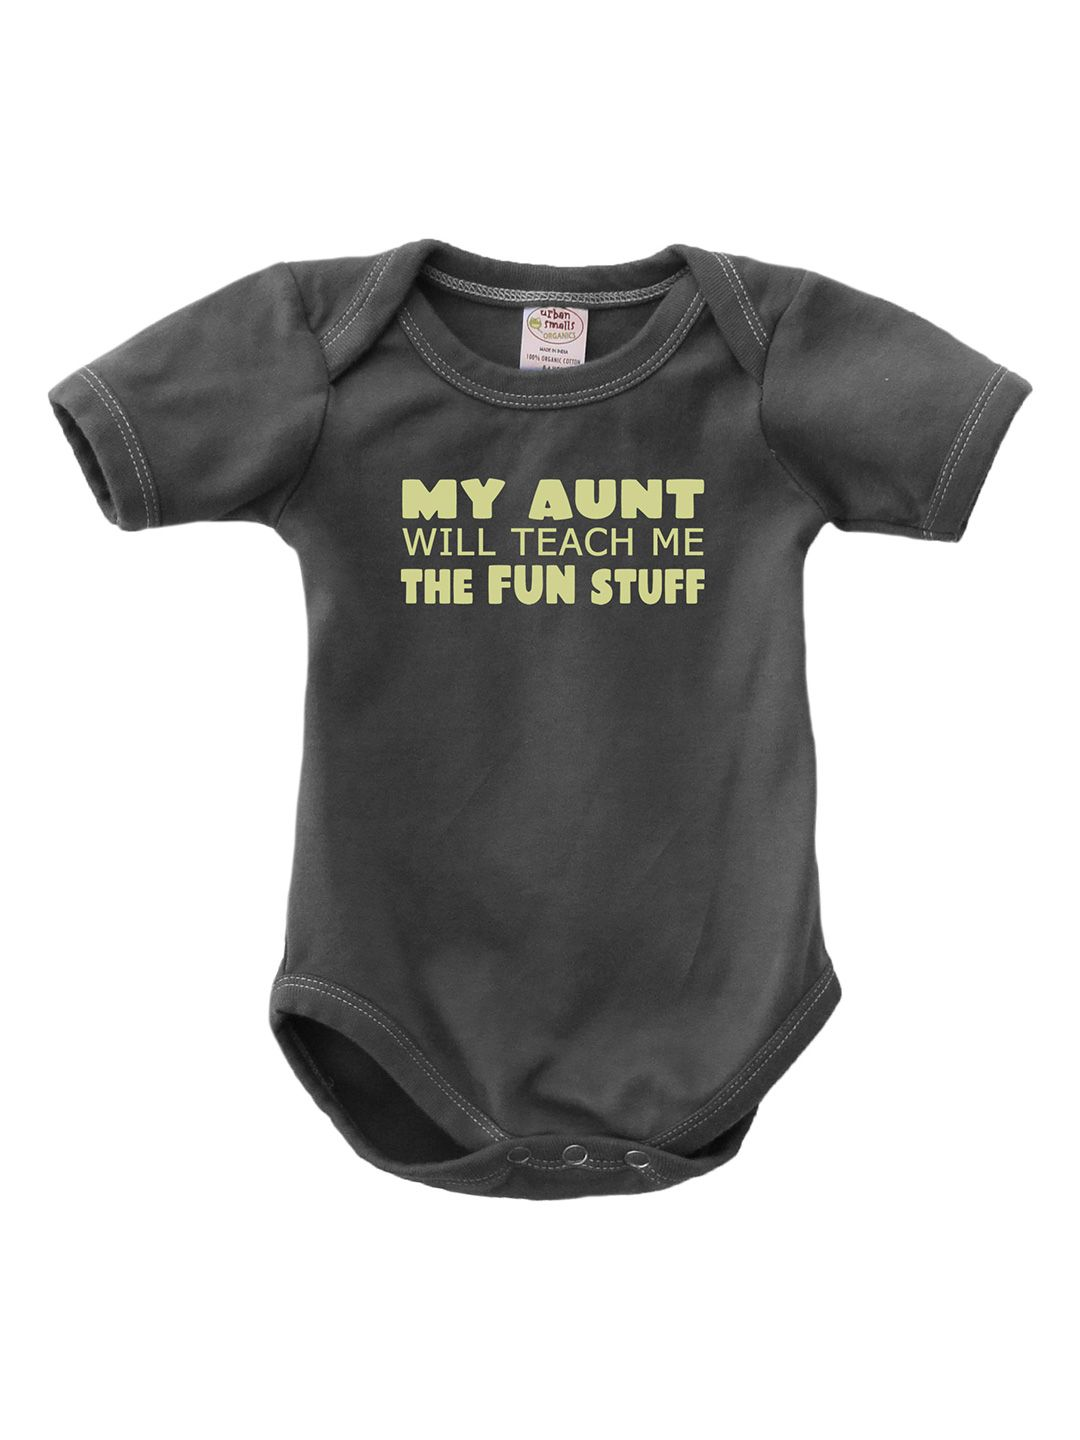 FOOTBALL Quarterback Tight End TWIN BABY Onesies-Twin Gift Idea For Sports Fans-Gender Neutral Twin Gift Set-Twin Baby Shower Onesies